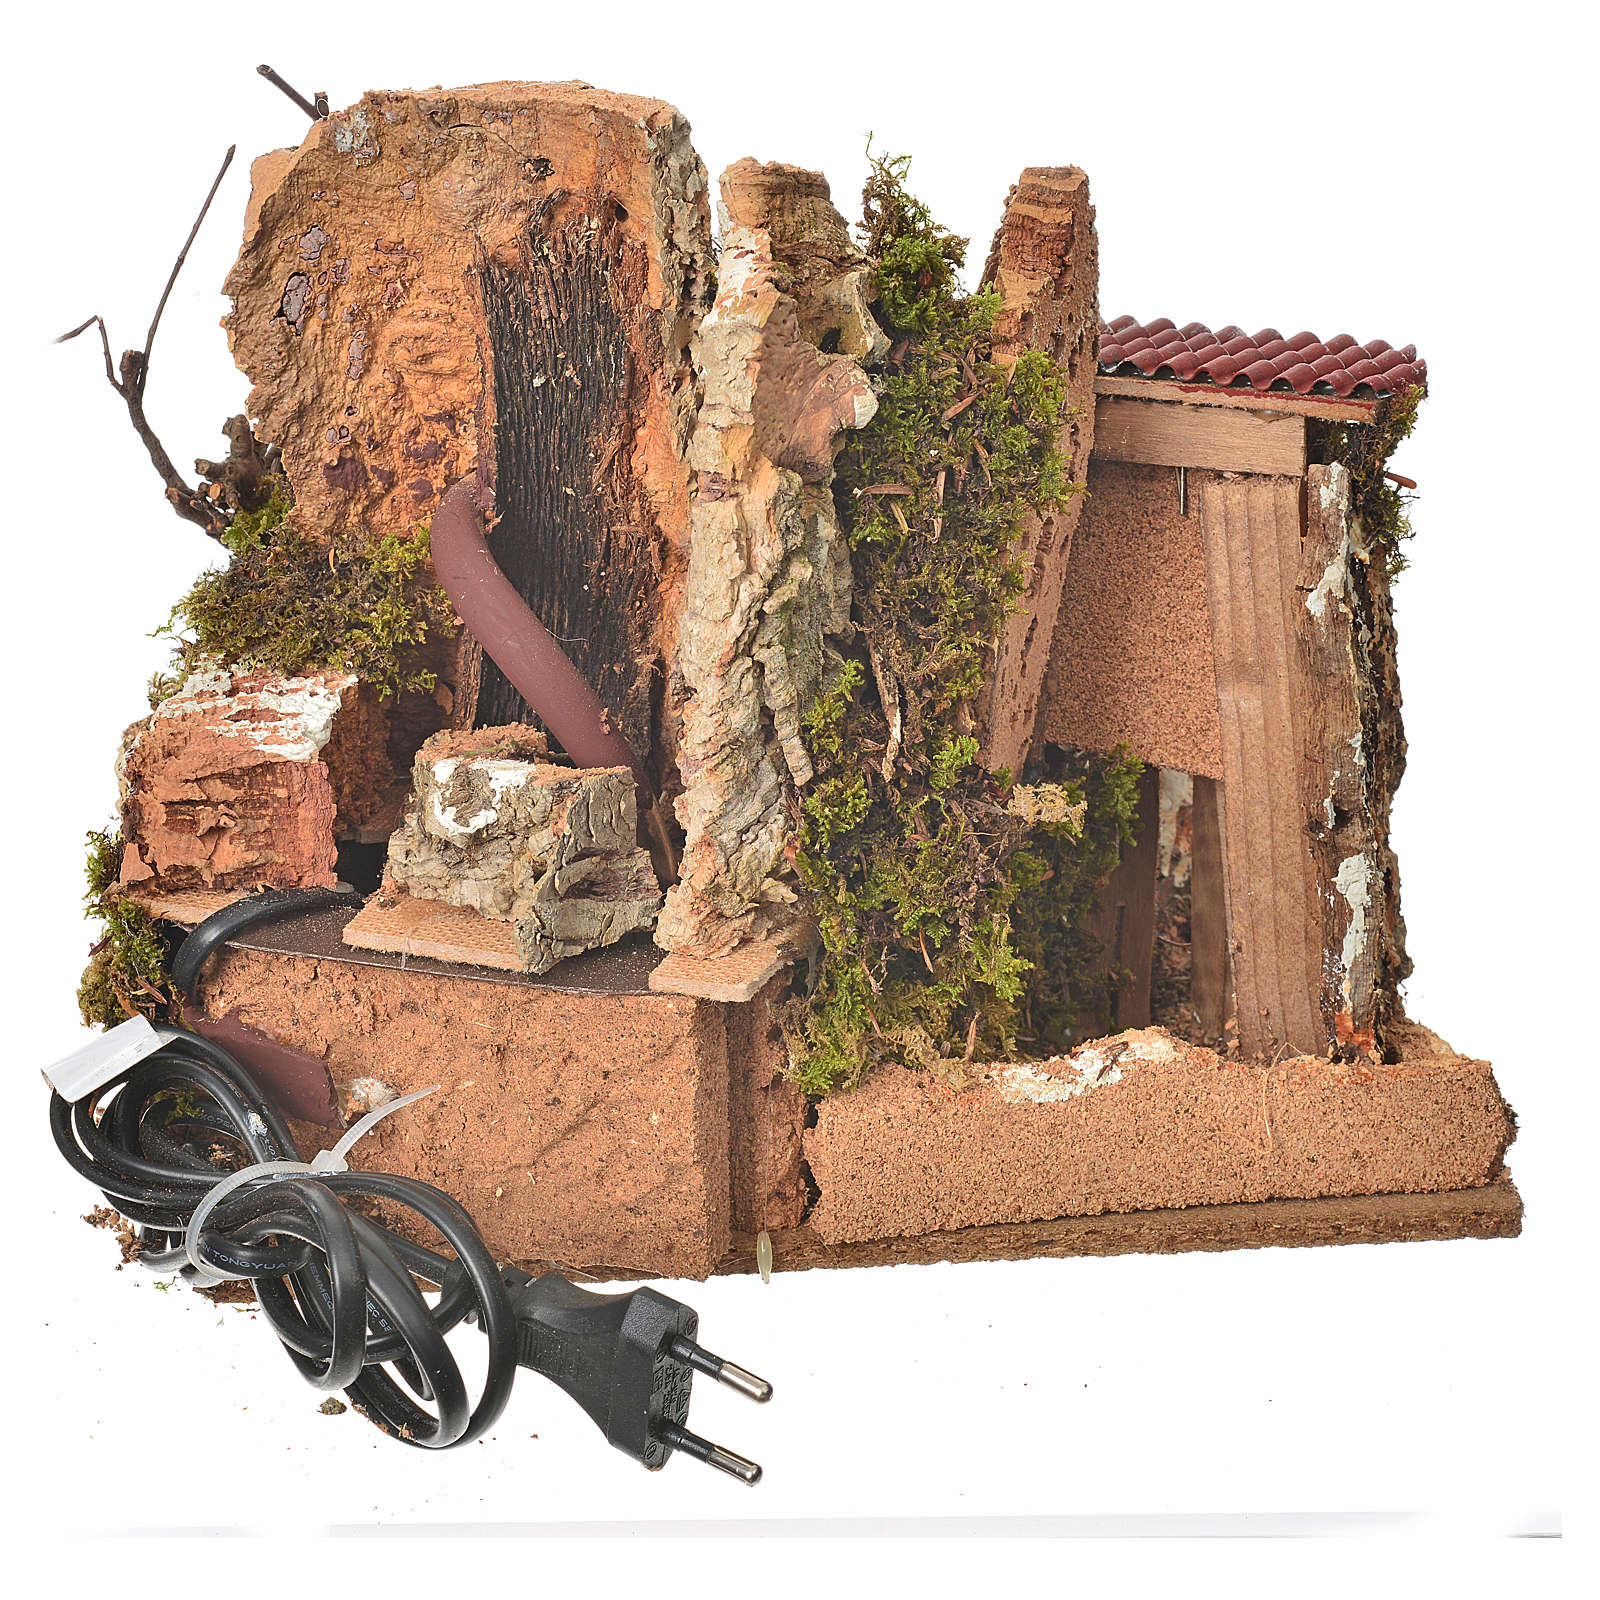 Nativity fountain in the rocks with house, setting 4